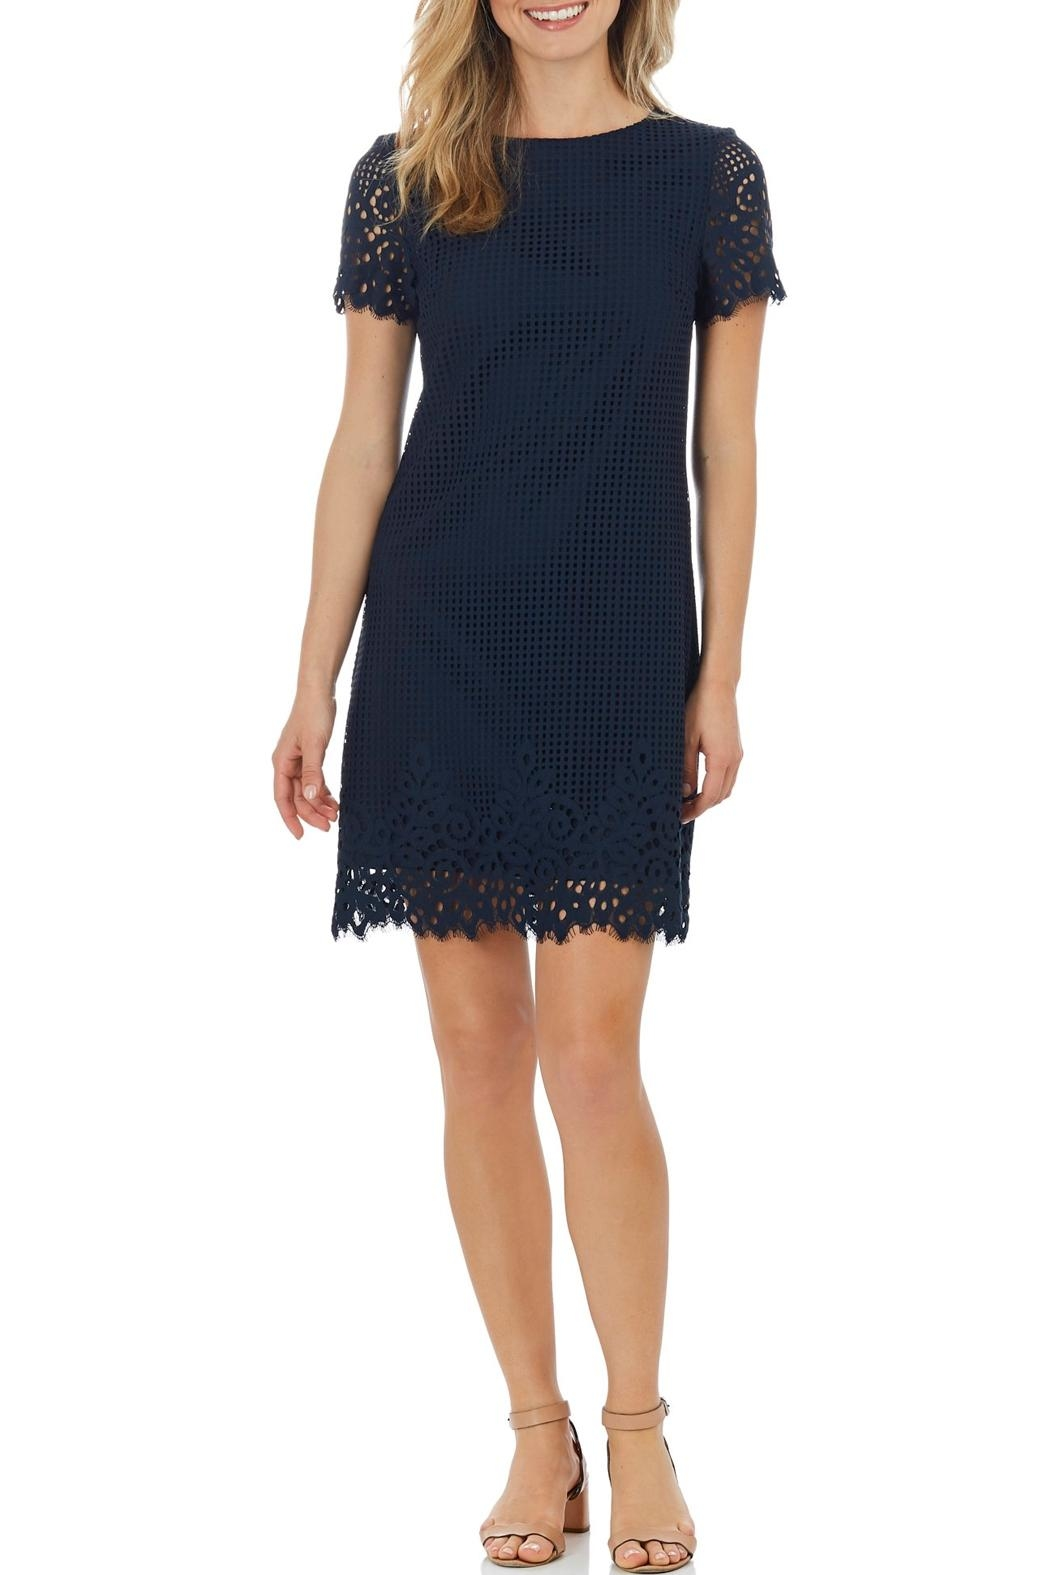 Jude Connally Ella Spring-Lace Dress - Front Cropped Image